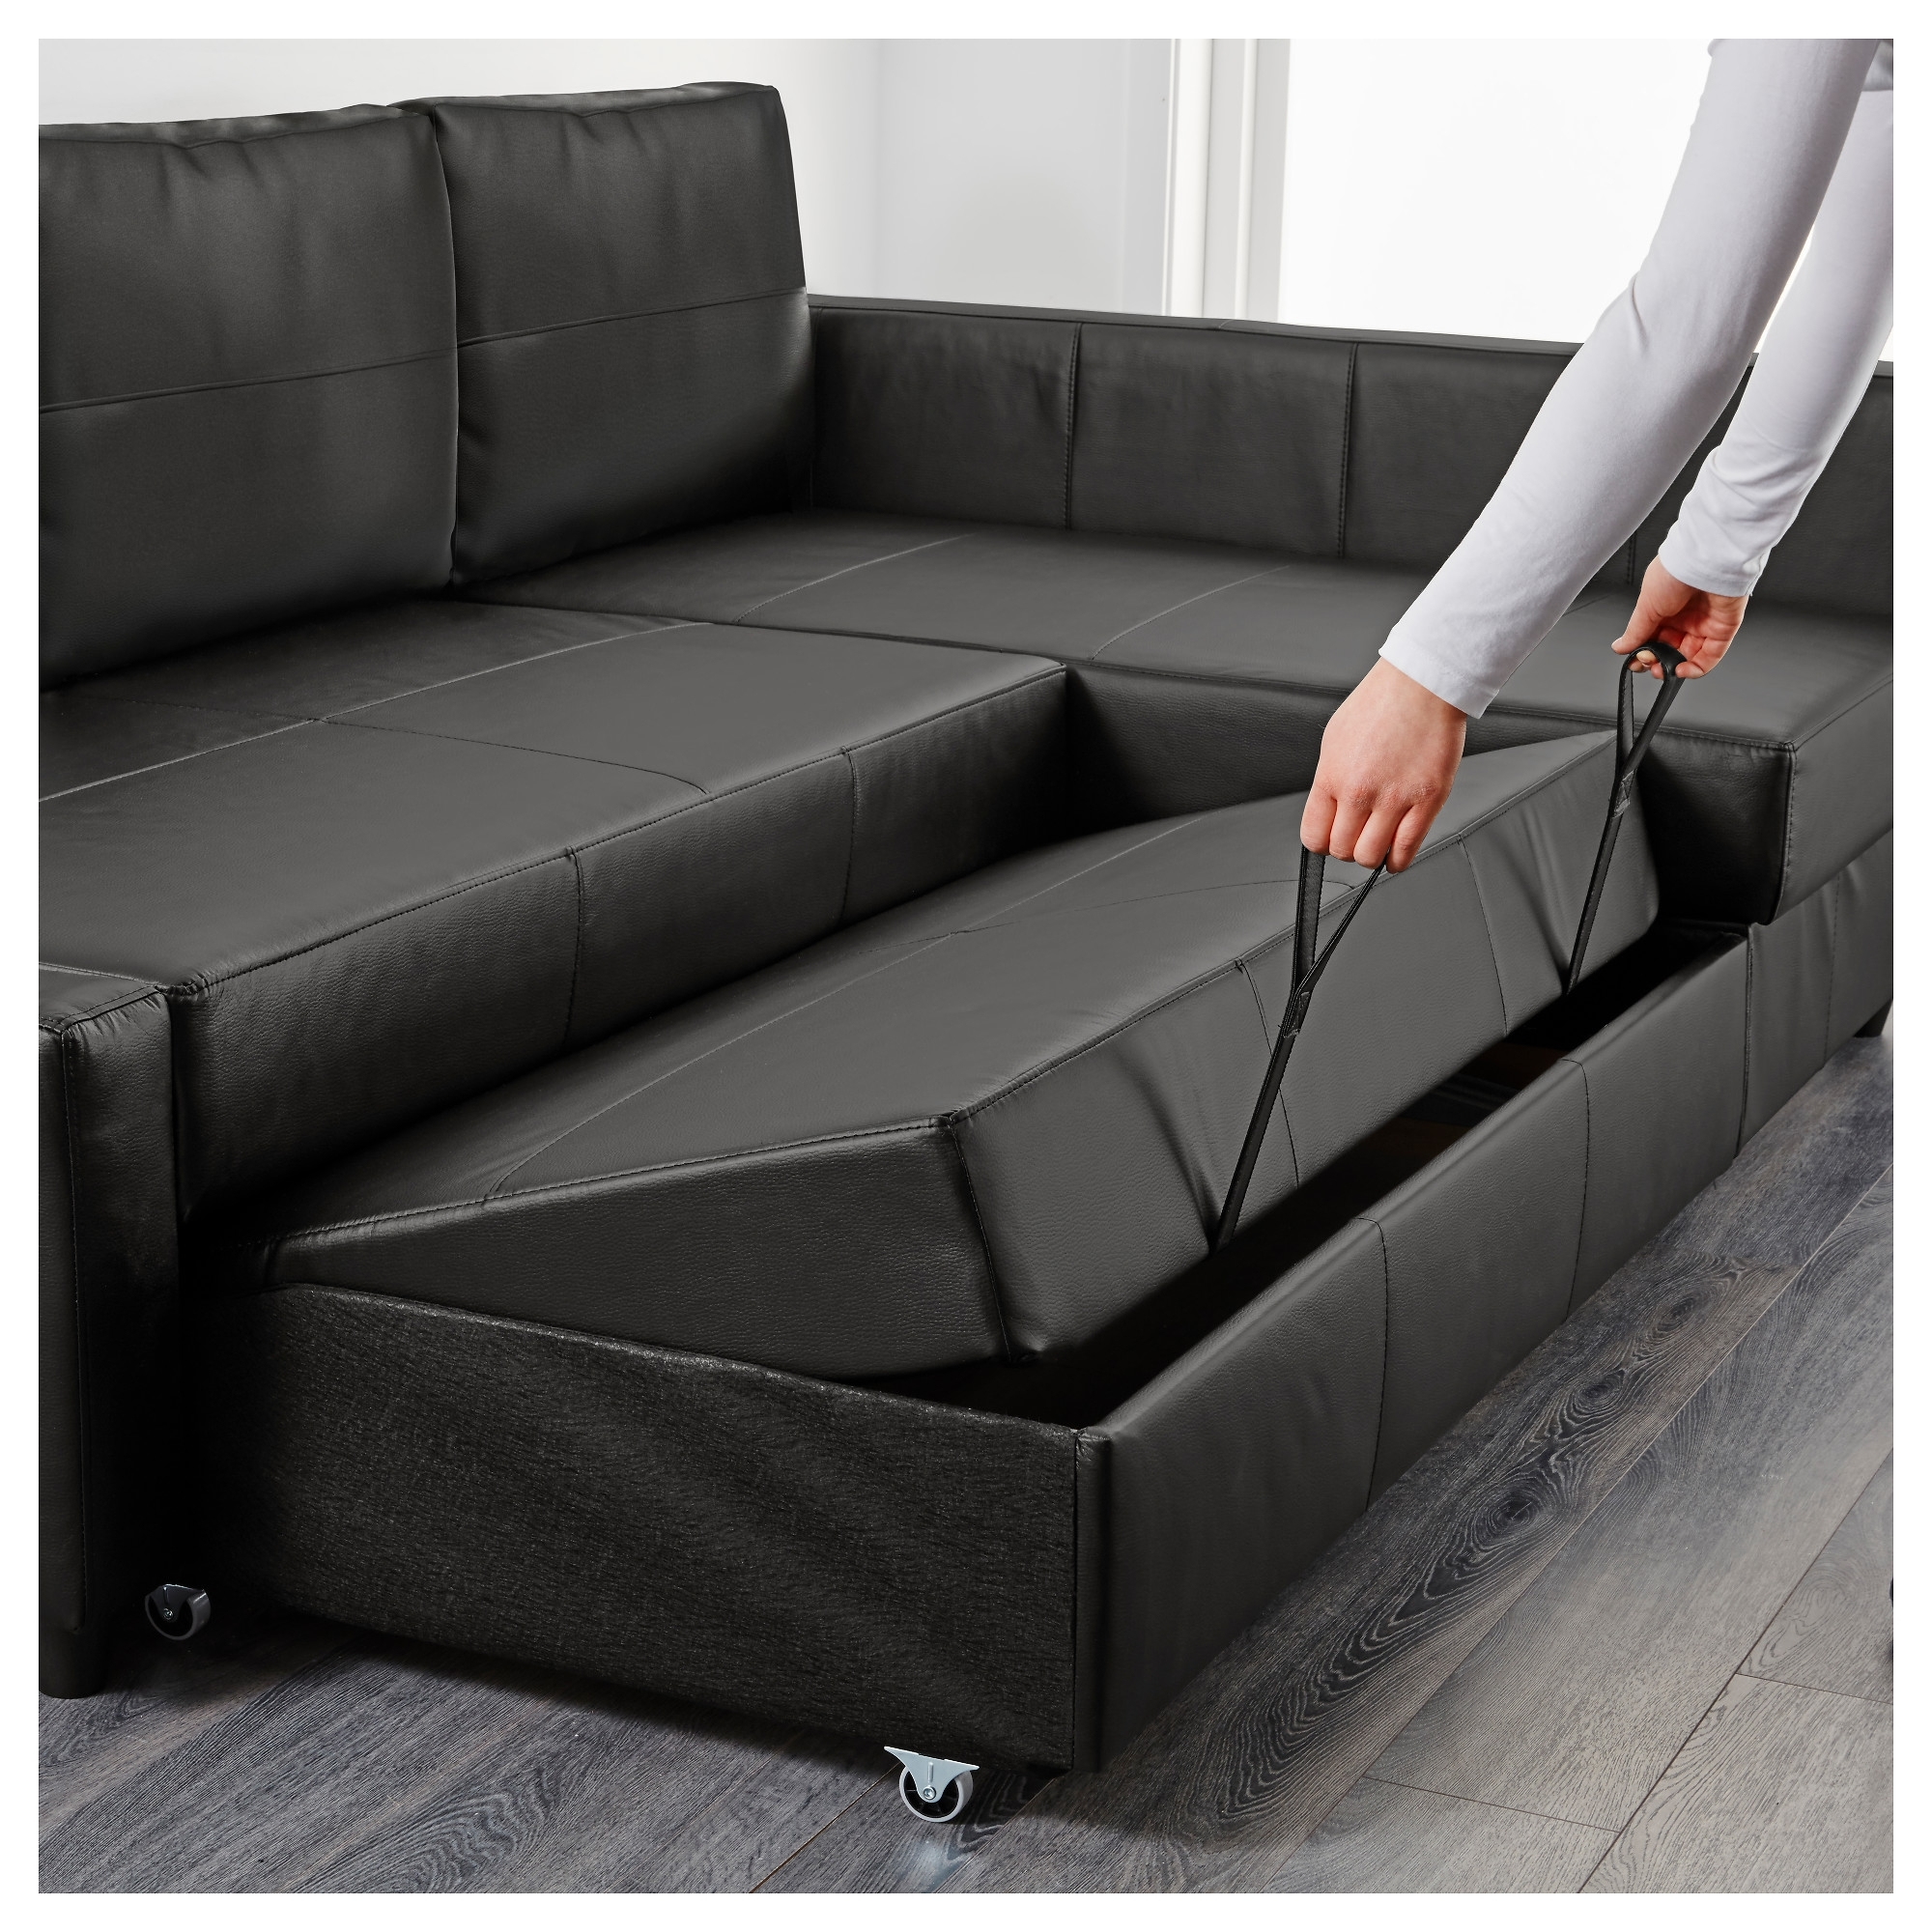 Widely Used Friheten Corner Sofa Bed With Storage Bomstad Black – Ikea Throughout Ikea Corner Sofas With Storage (View 19 of 20)